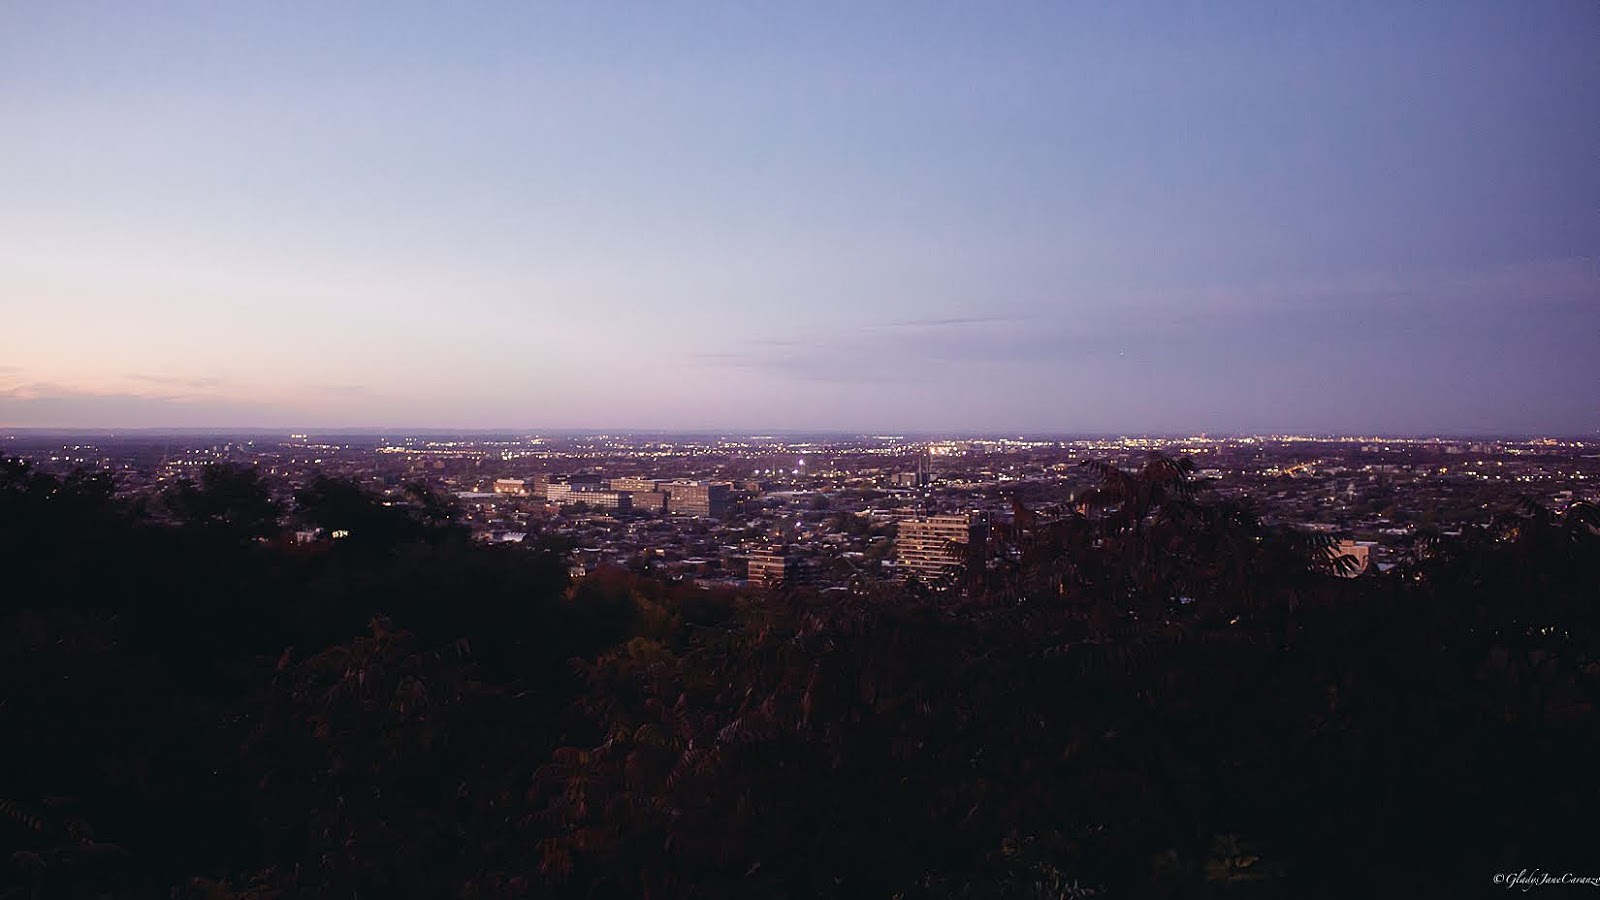 Mount Royal Montreal, Quebec: Things To Do in Montreal